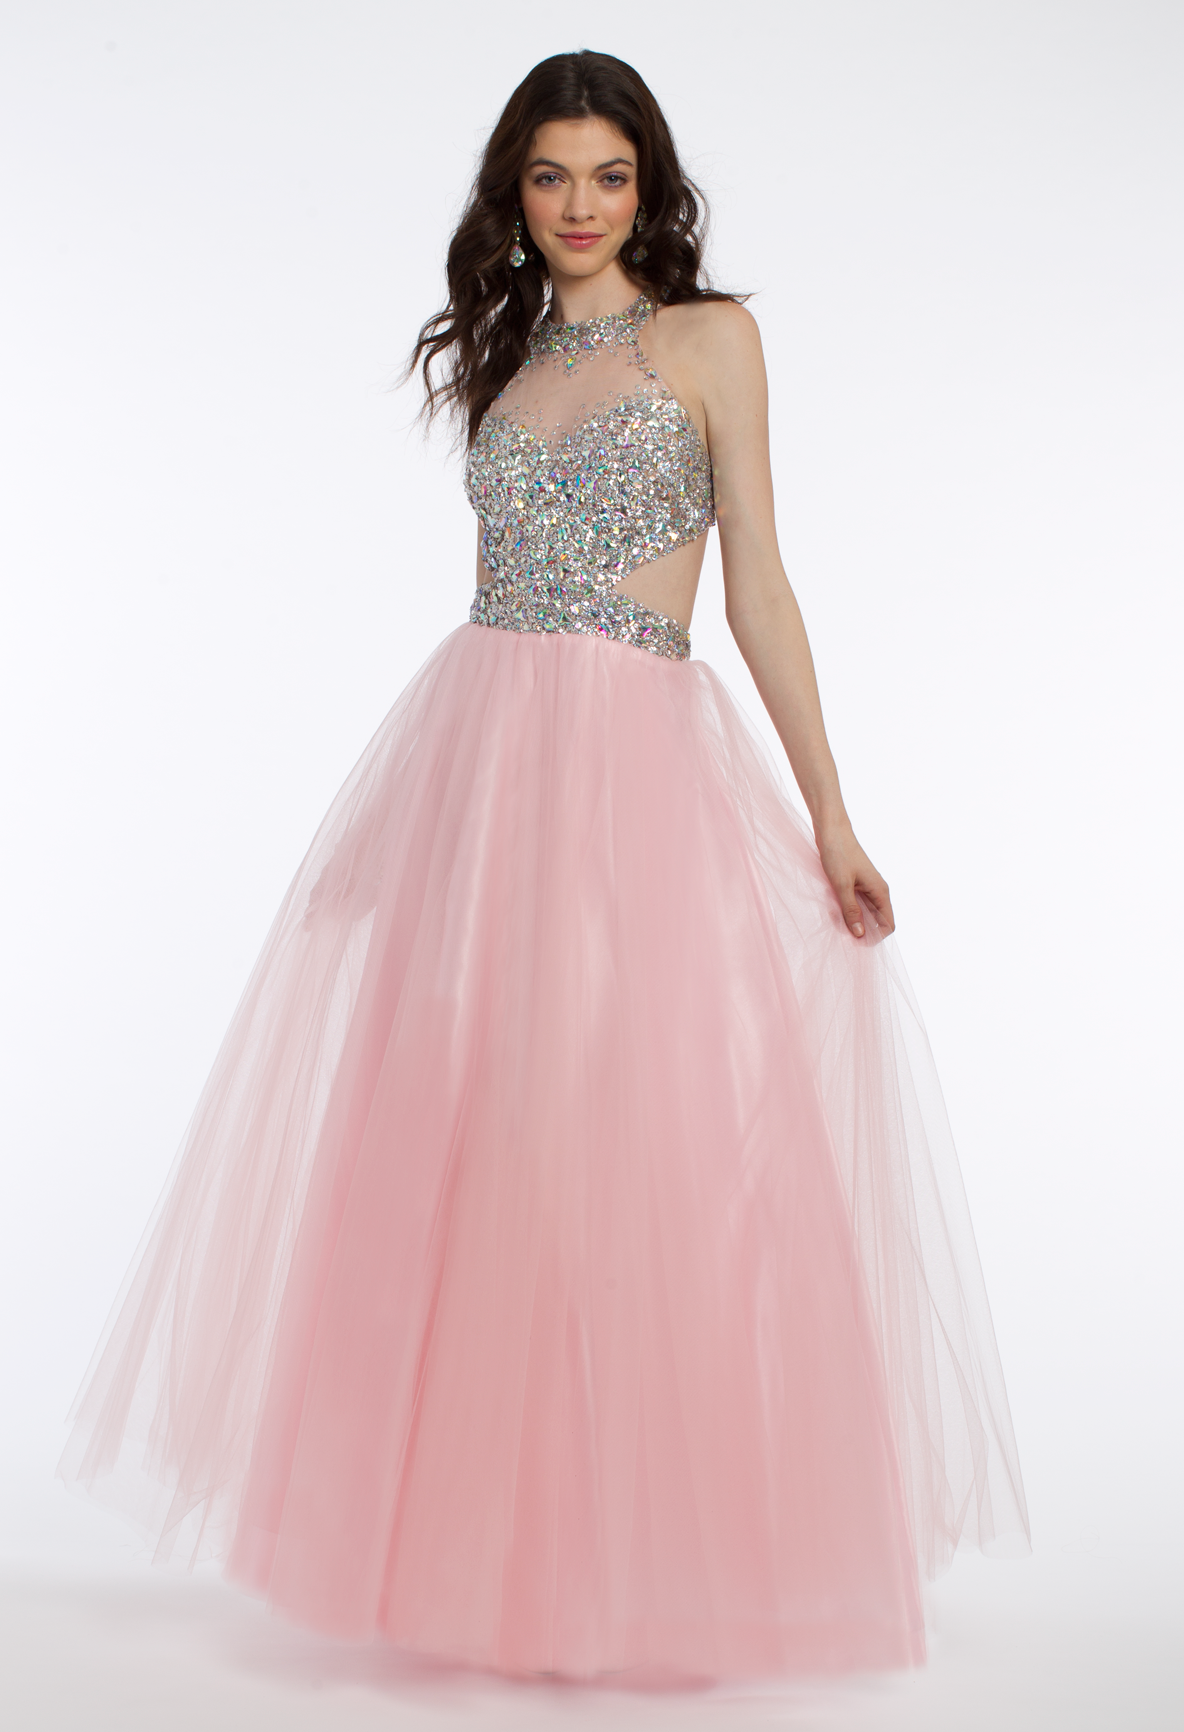 AB Cluster Stone Ballgown Dress | Tulle balls, Dress designs and ...